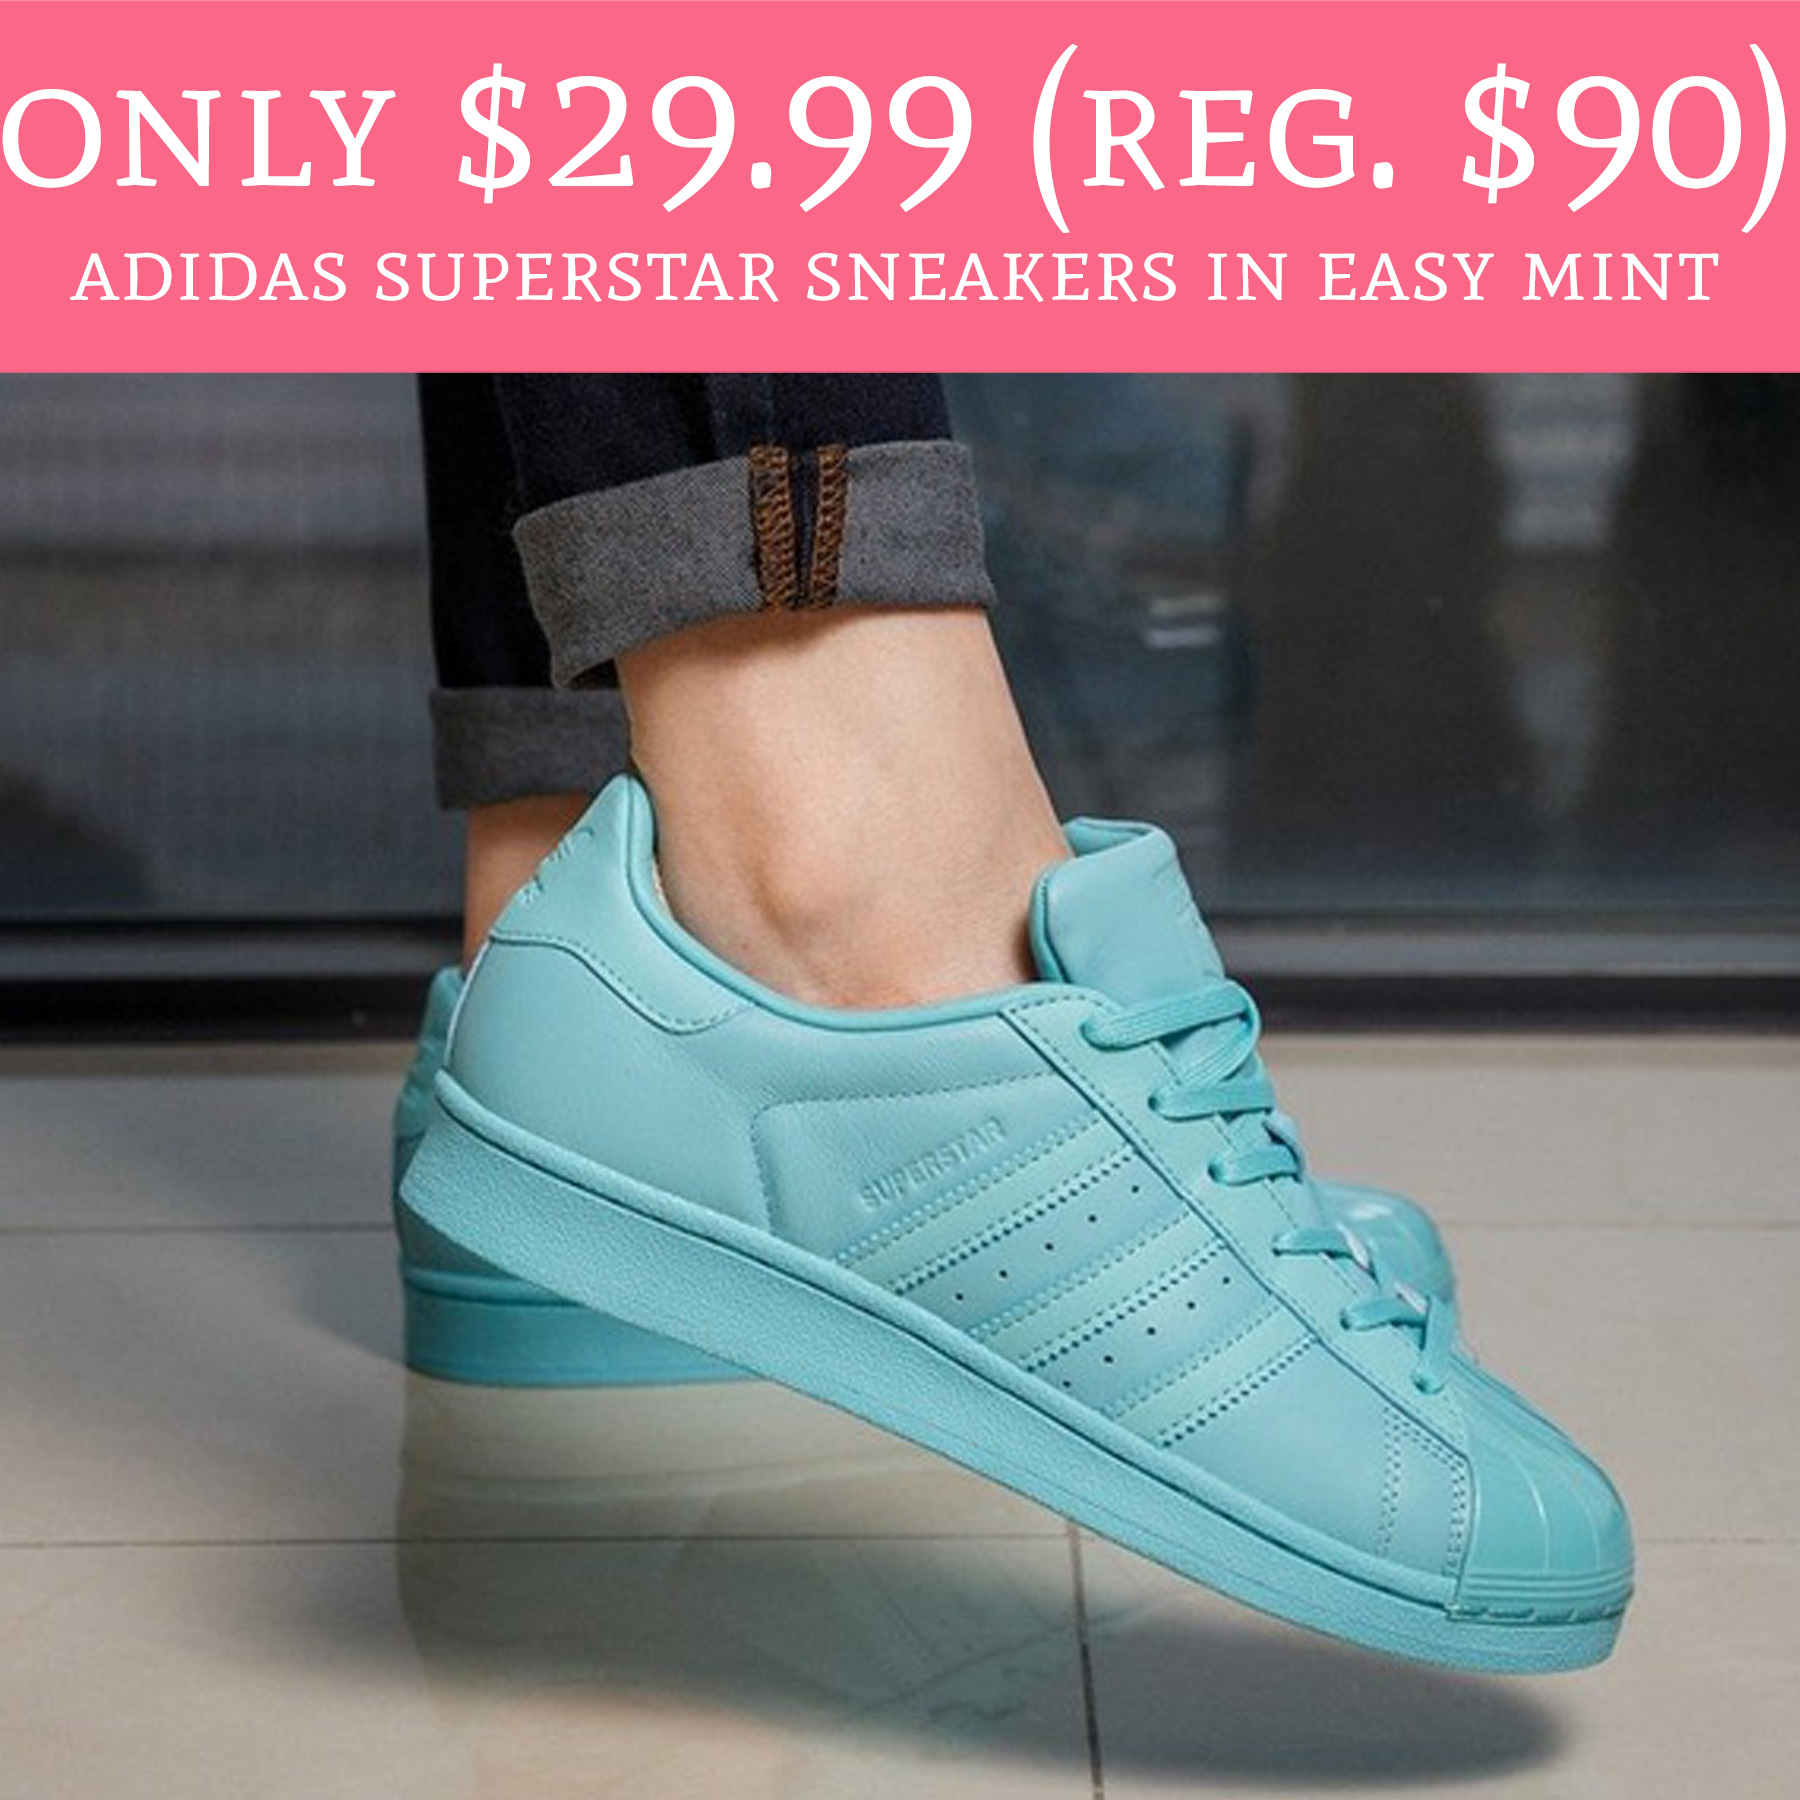 23408856d2734 reduced adidas wear resistance big easy travel blue white superstar 2 lite  md sole shoes women hot e5434 c5a46  france lowest price 11823 5d0e7